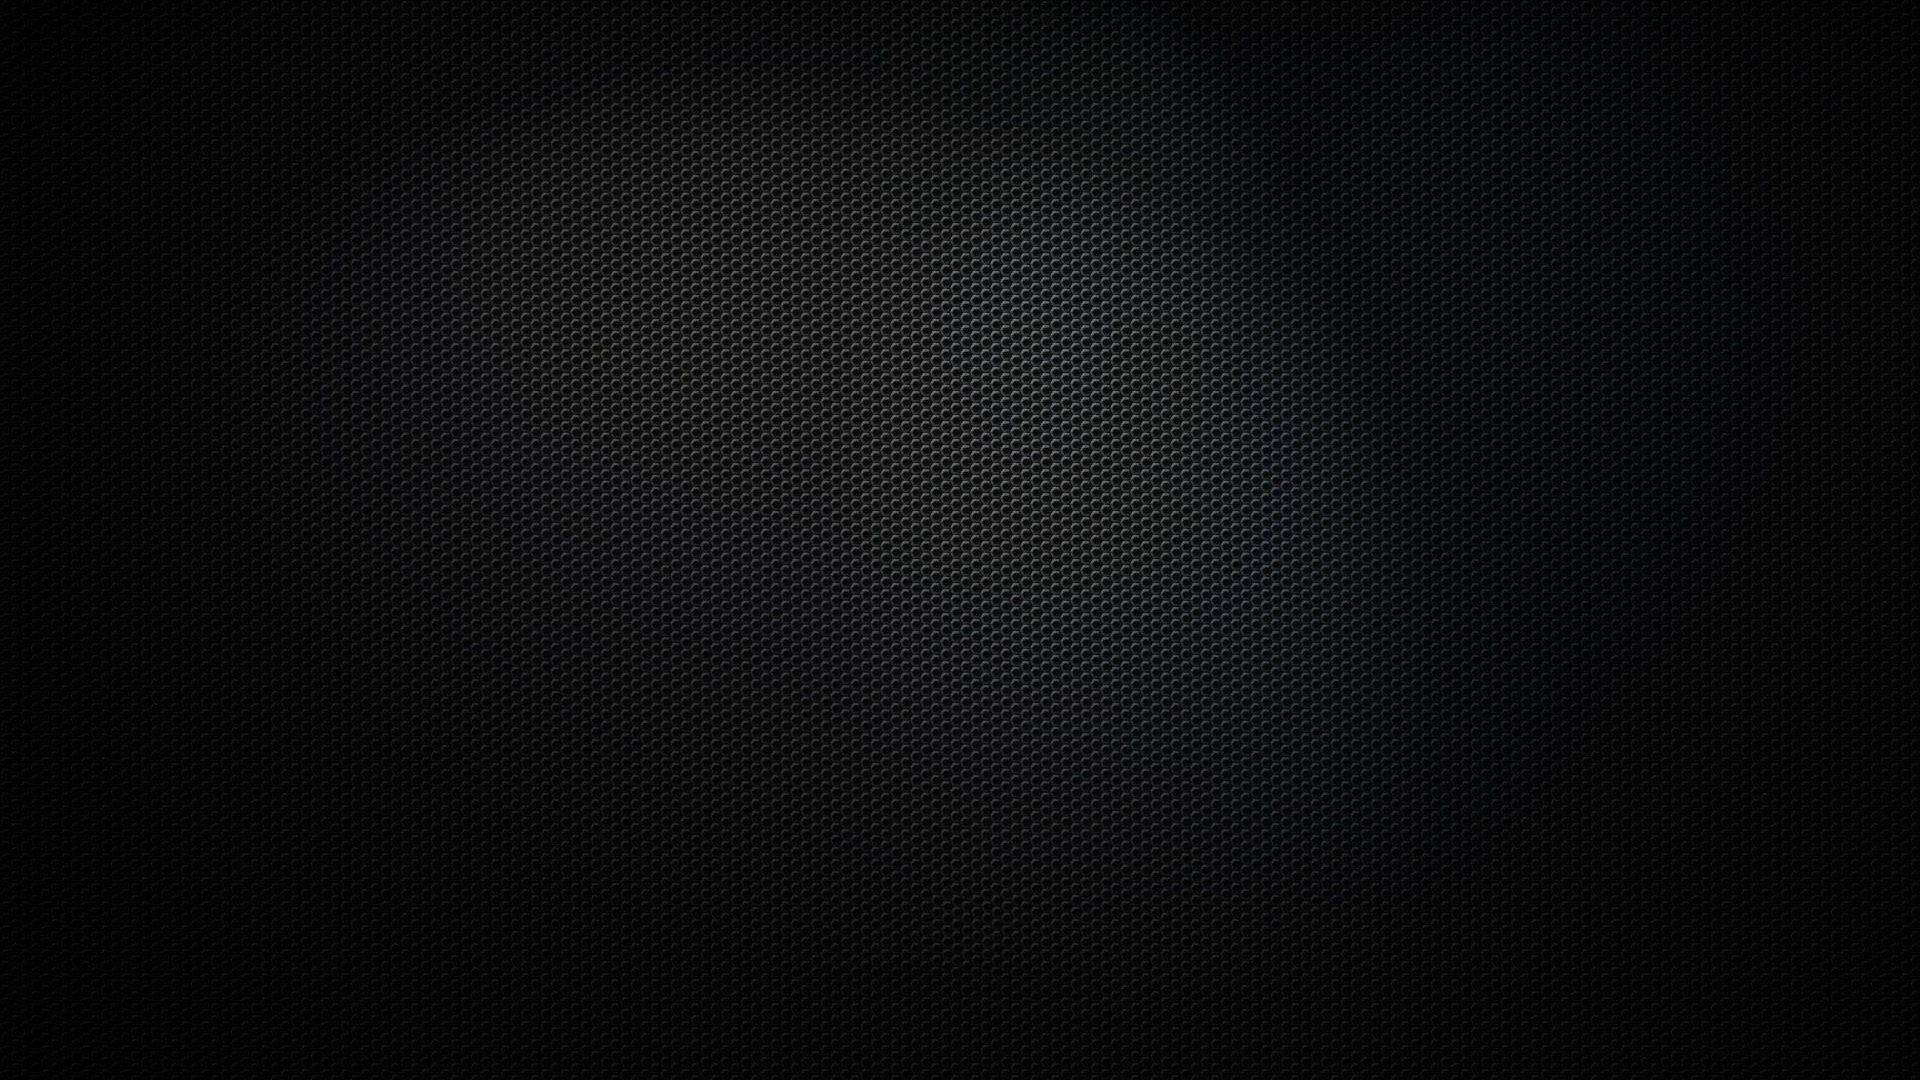 High Resolution Black Background hd picture